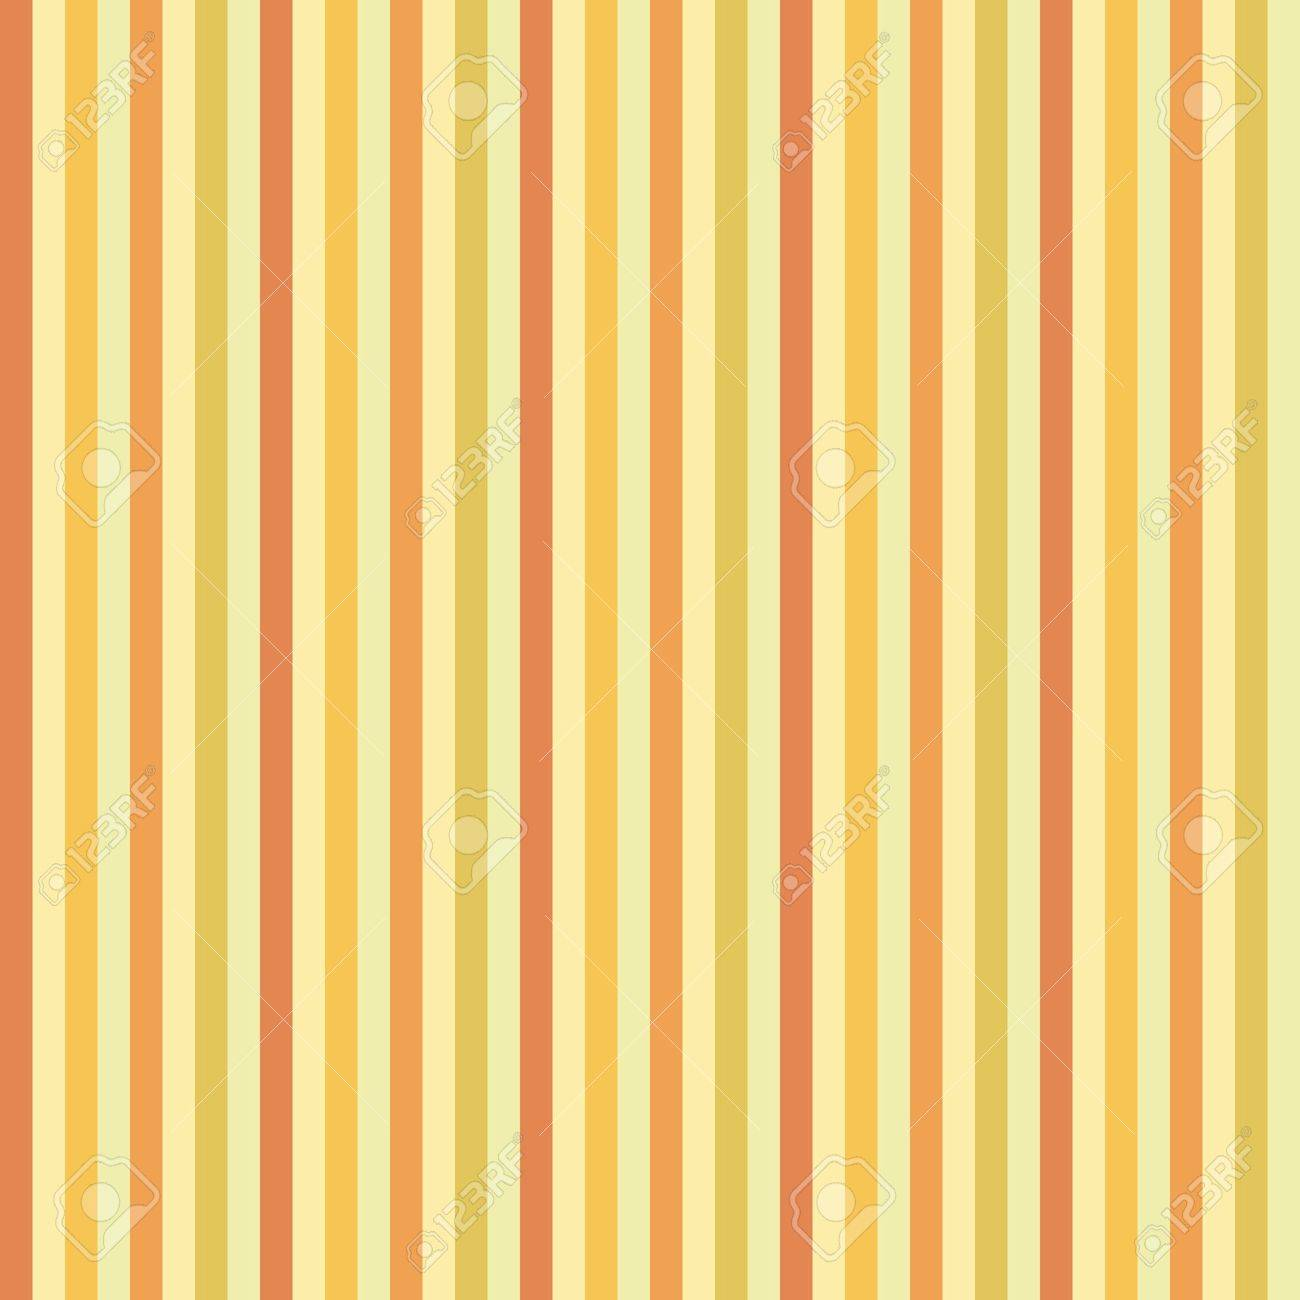 Abstract Striped Colored Wallpaper Stock Vector - 15168148